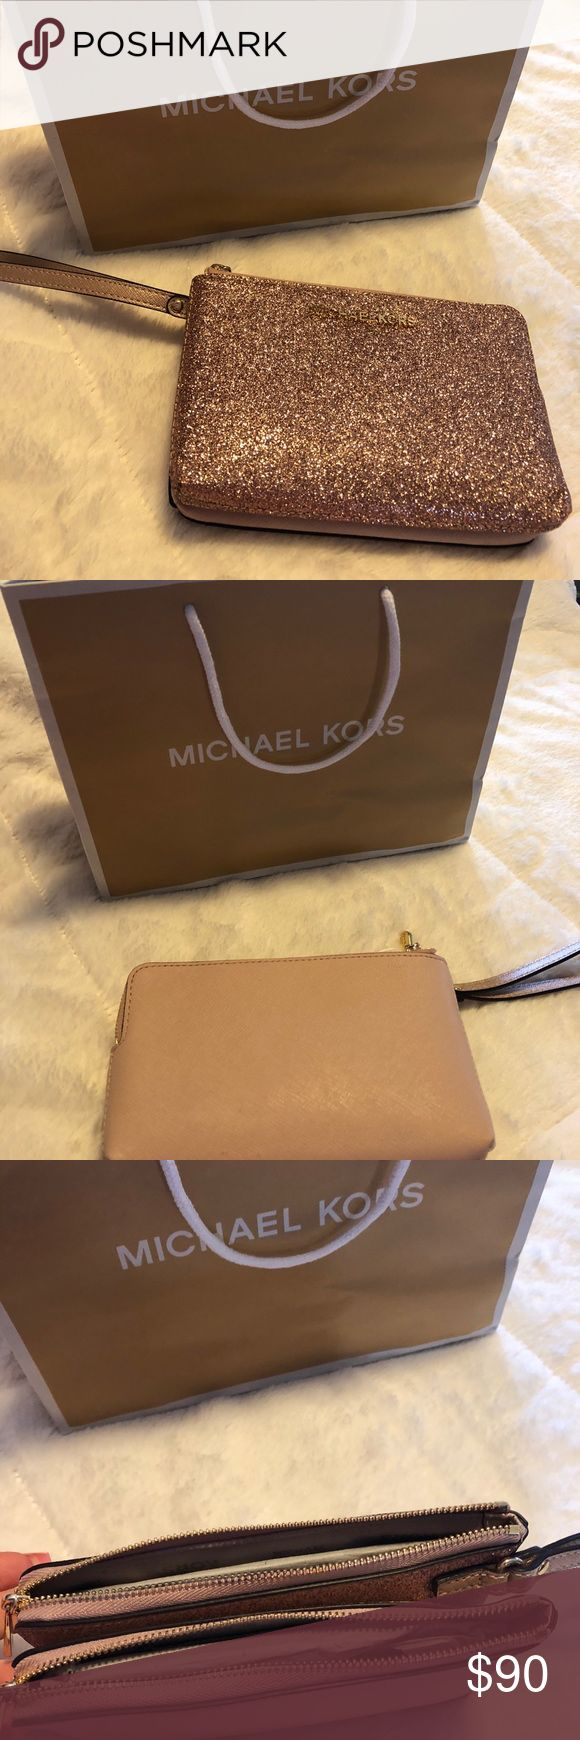 Michael Kors Double Wristlet Wallet Brand new, never used! Michael Kors Bags Clutches & Wristlets